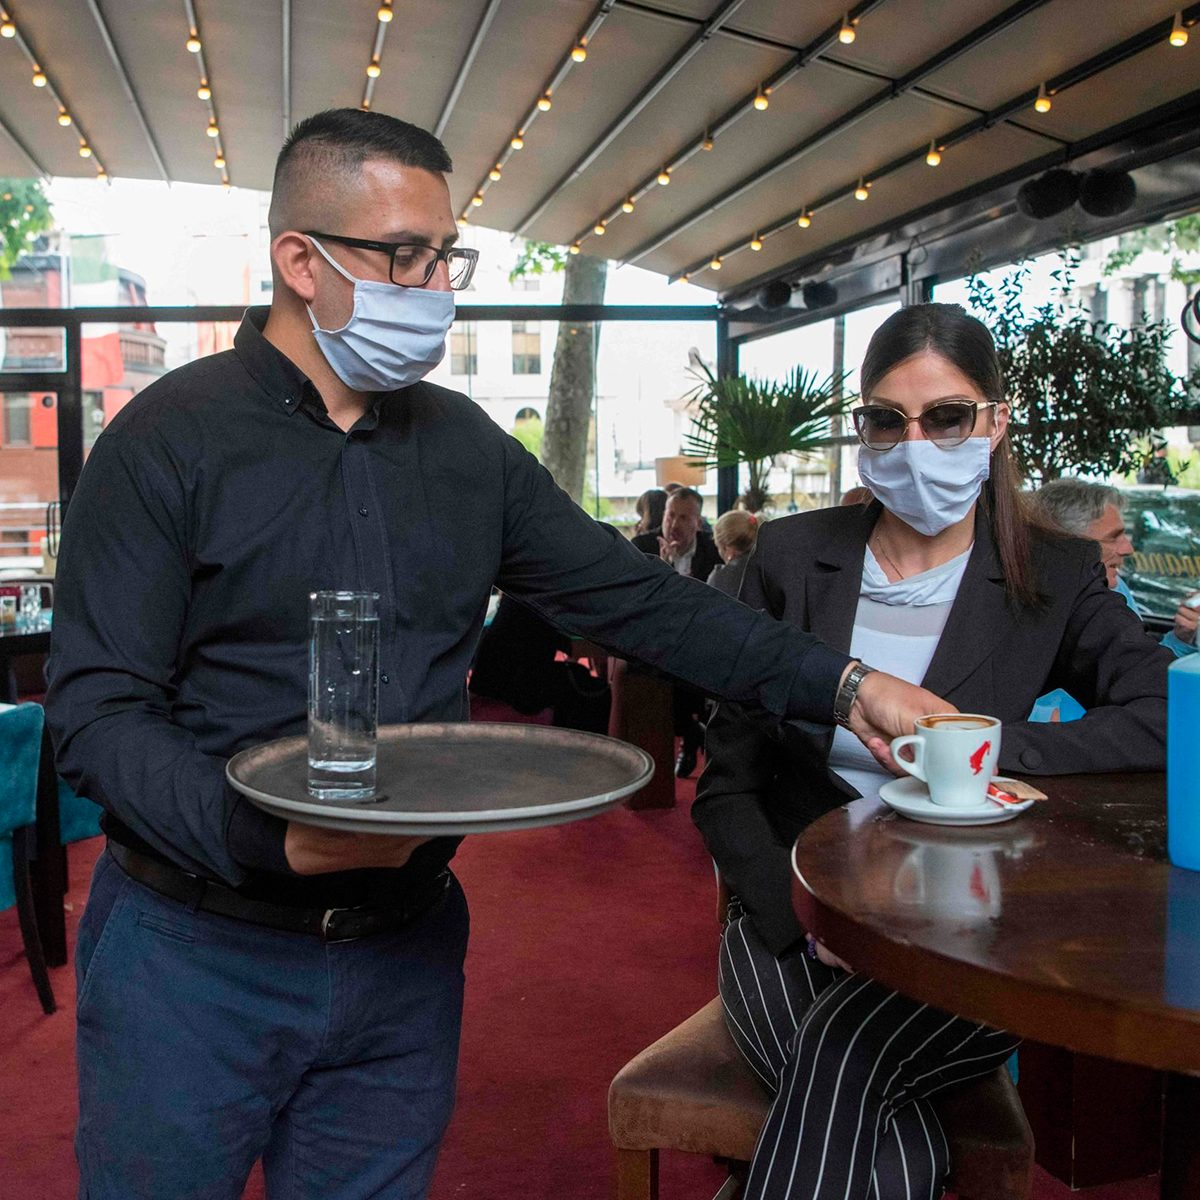 Masked waiter bringing coffee to guest